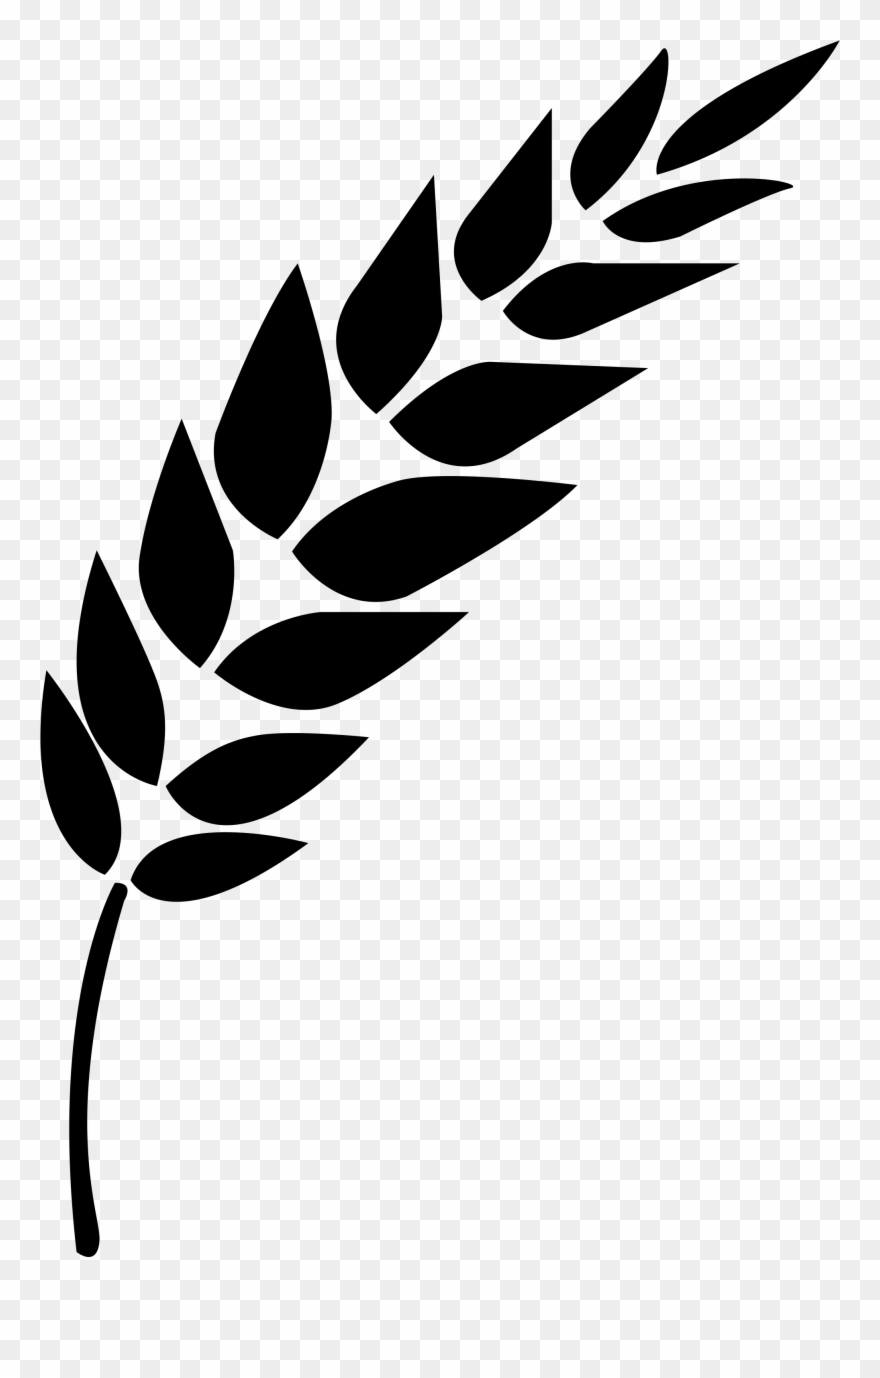 wheat vector clipart 10 free Cliparts | Download images on ...